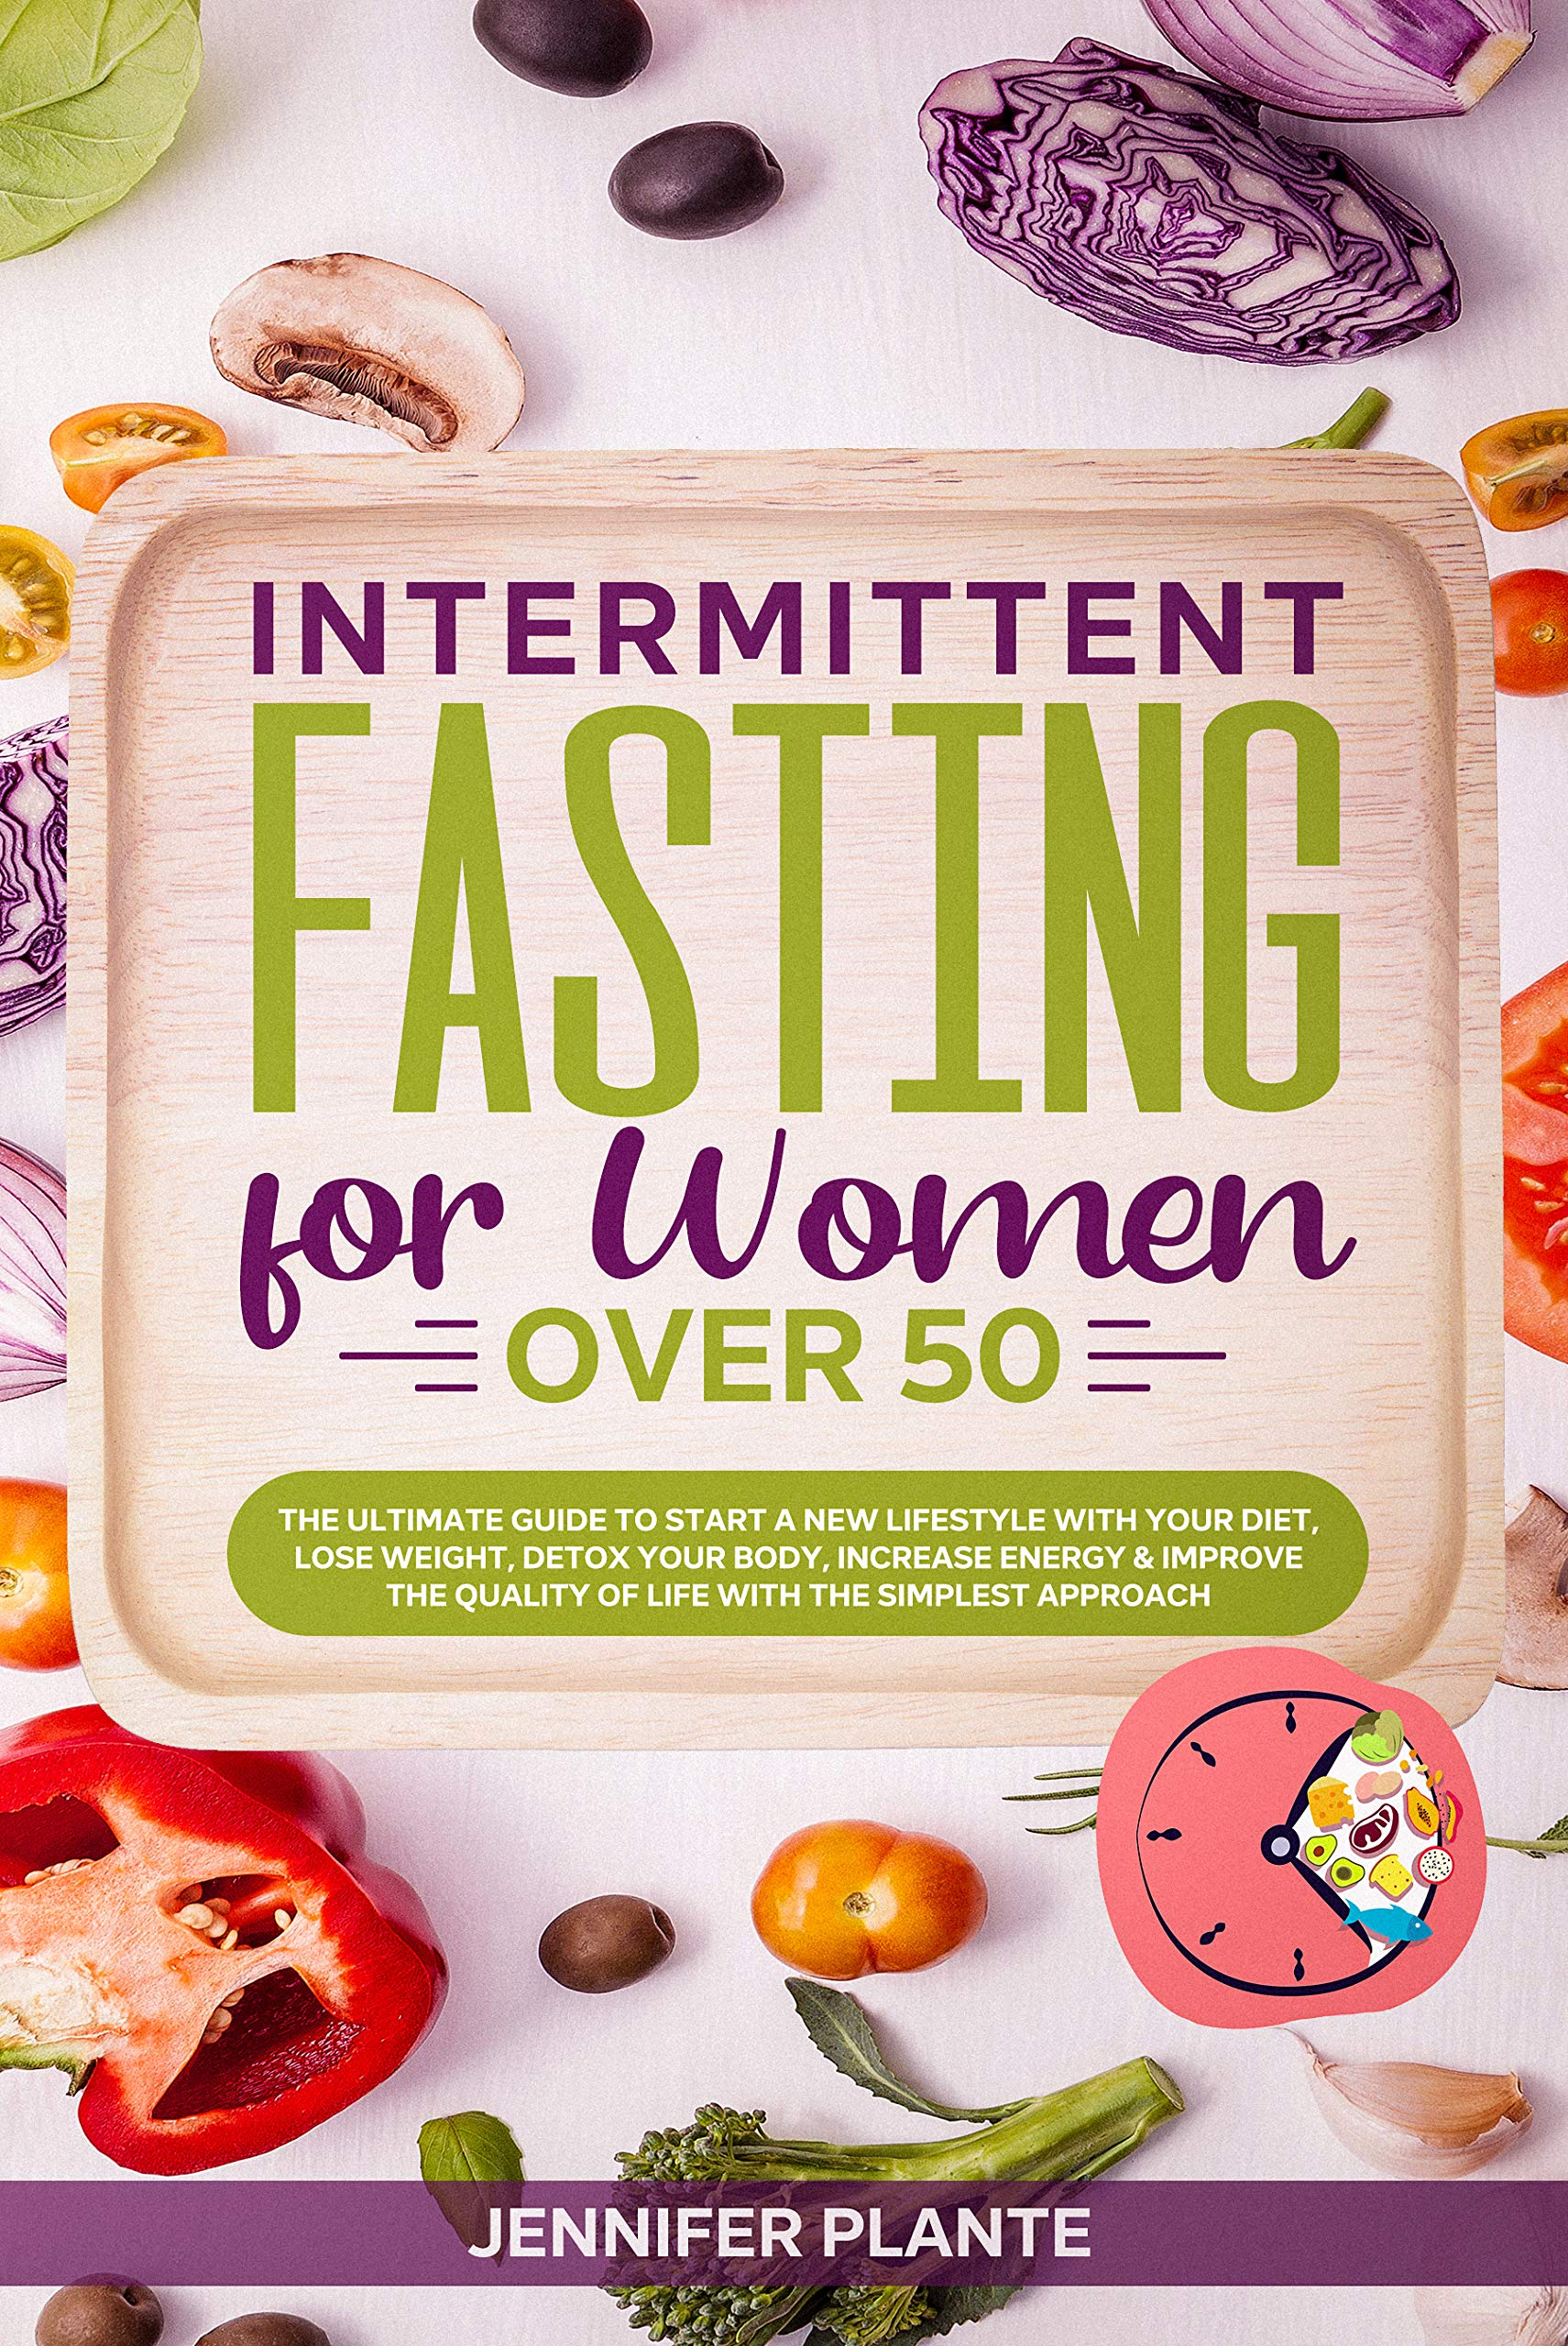 Intermittent Fasting for Women Over 50: The Ultimate Guide to Start a New Lifestyle with Your Diet, Lose Weight, Detox Your Body, Increase Energy & Improve the Quality of Life with a Simple Approach